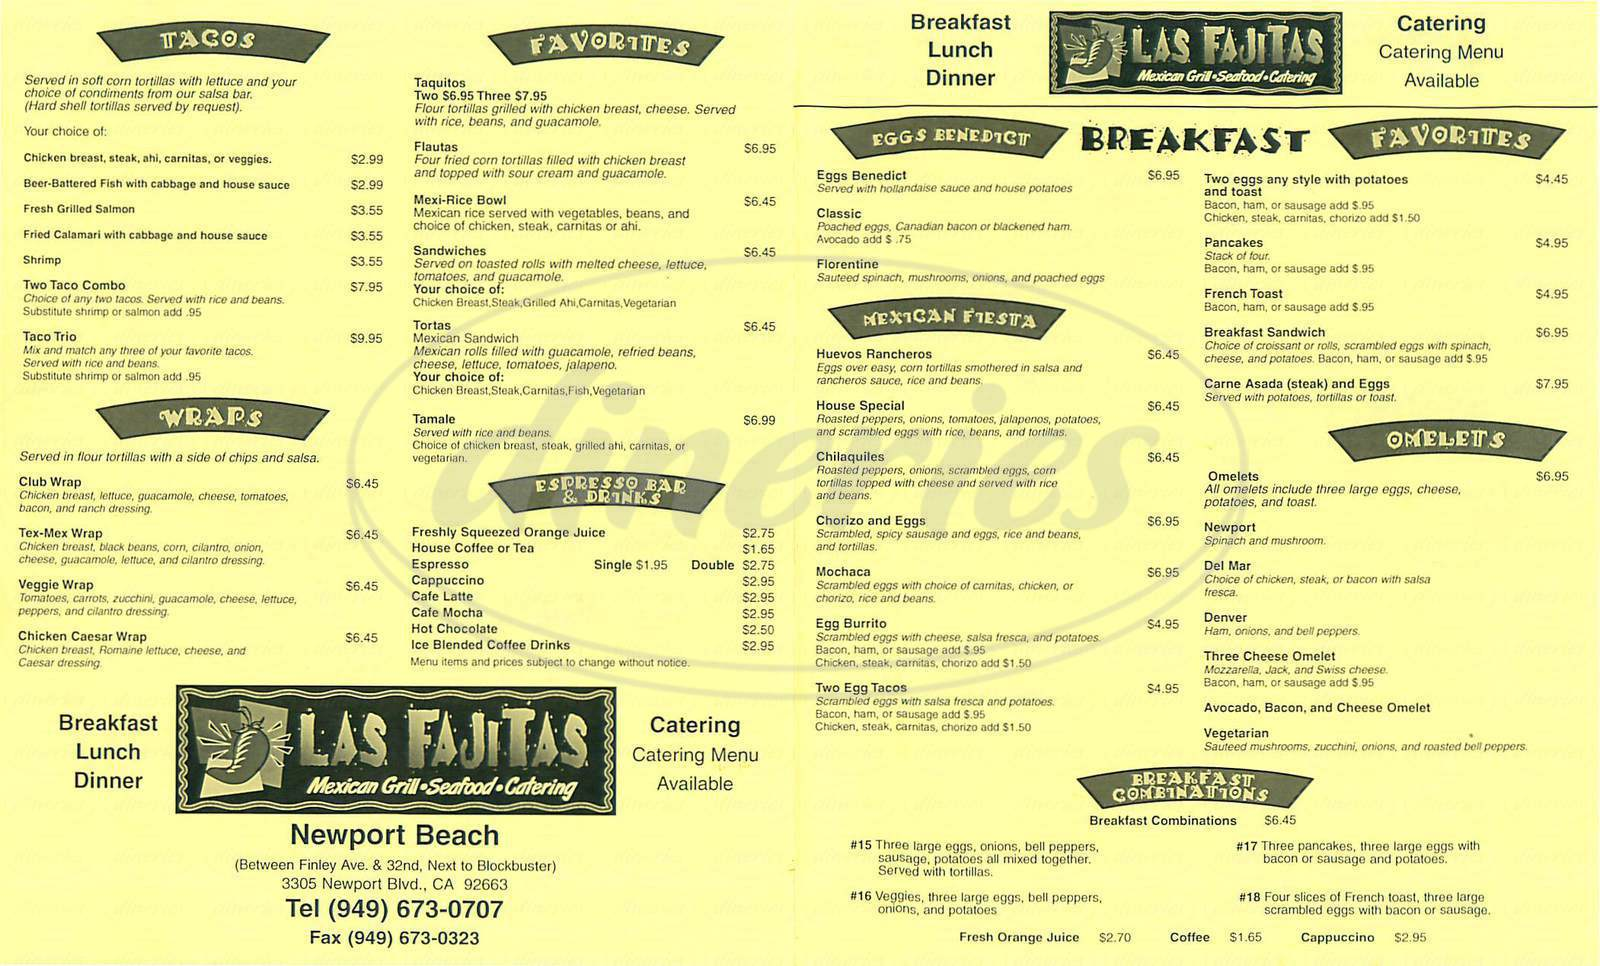 menu for Las Fajitas